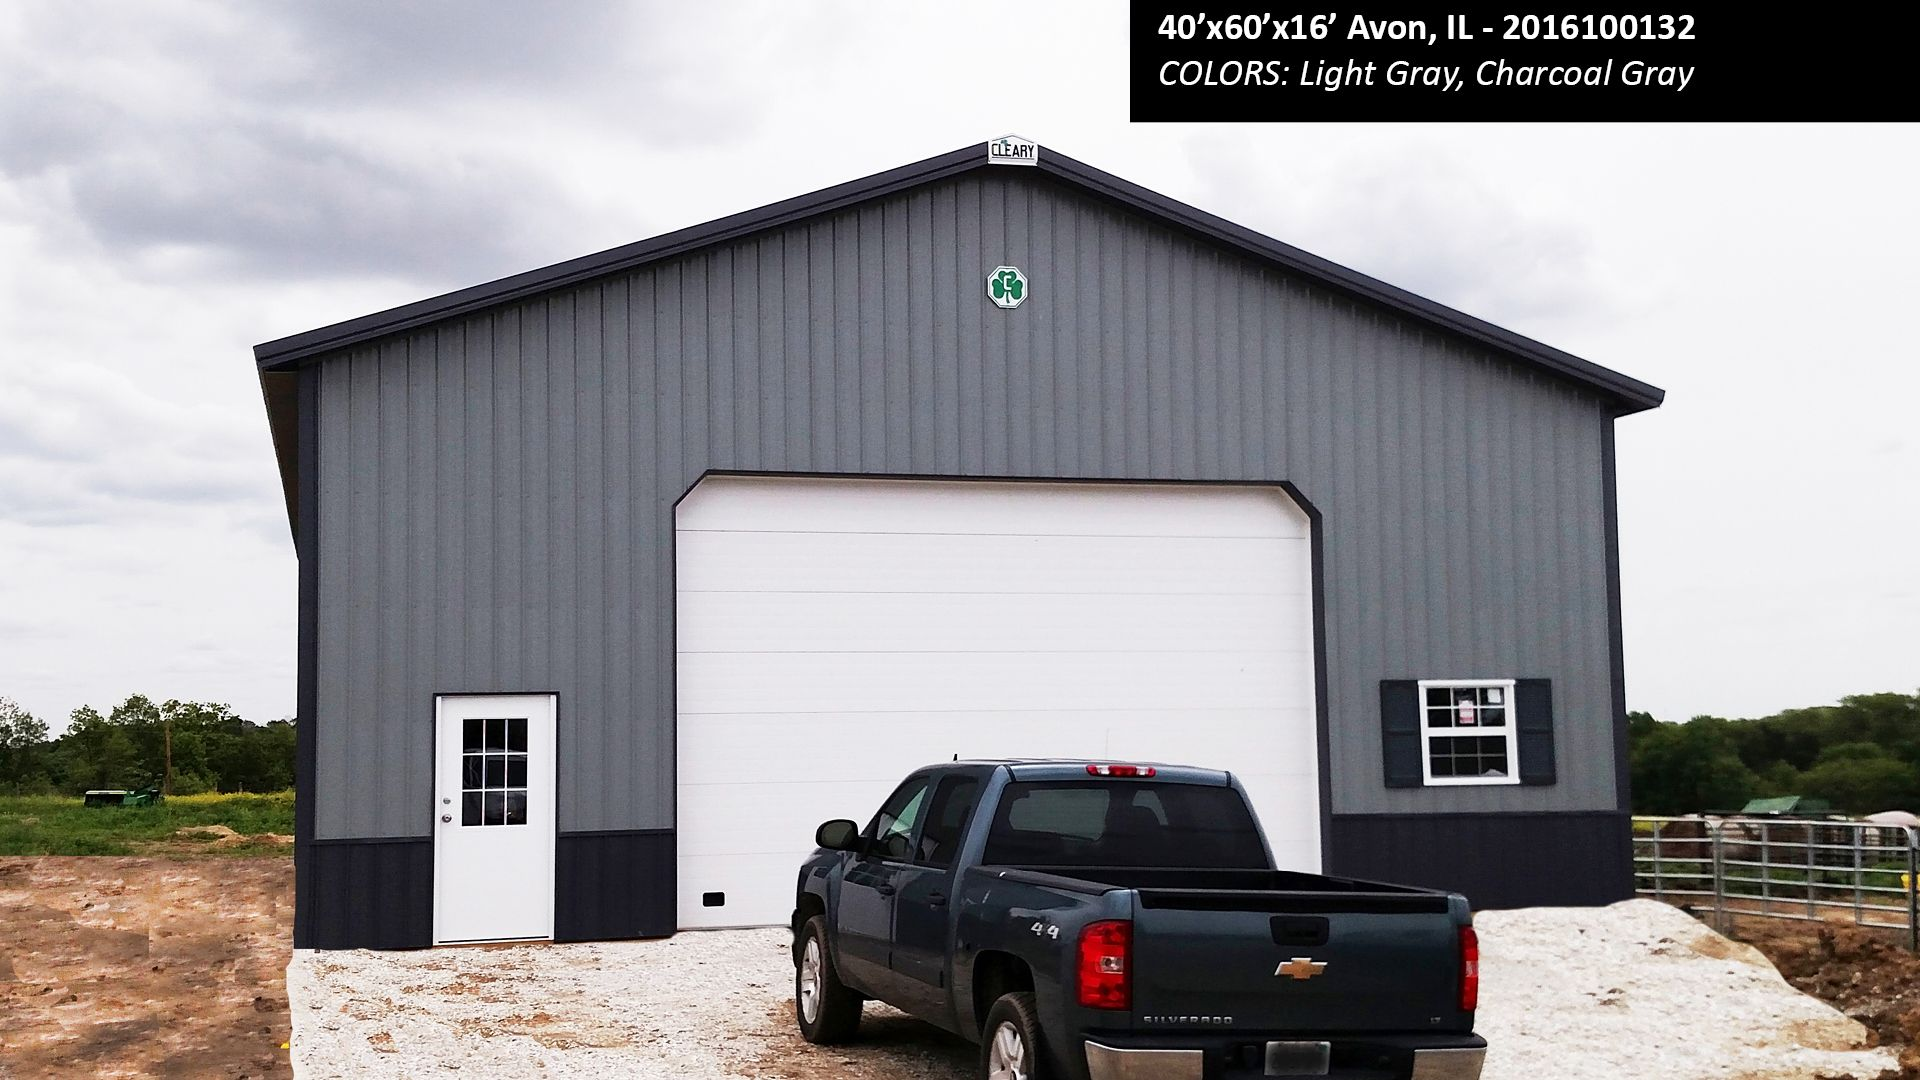 40 X60 X16 Cleary Suburban Energy Miser Building In Avon Il